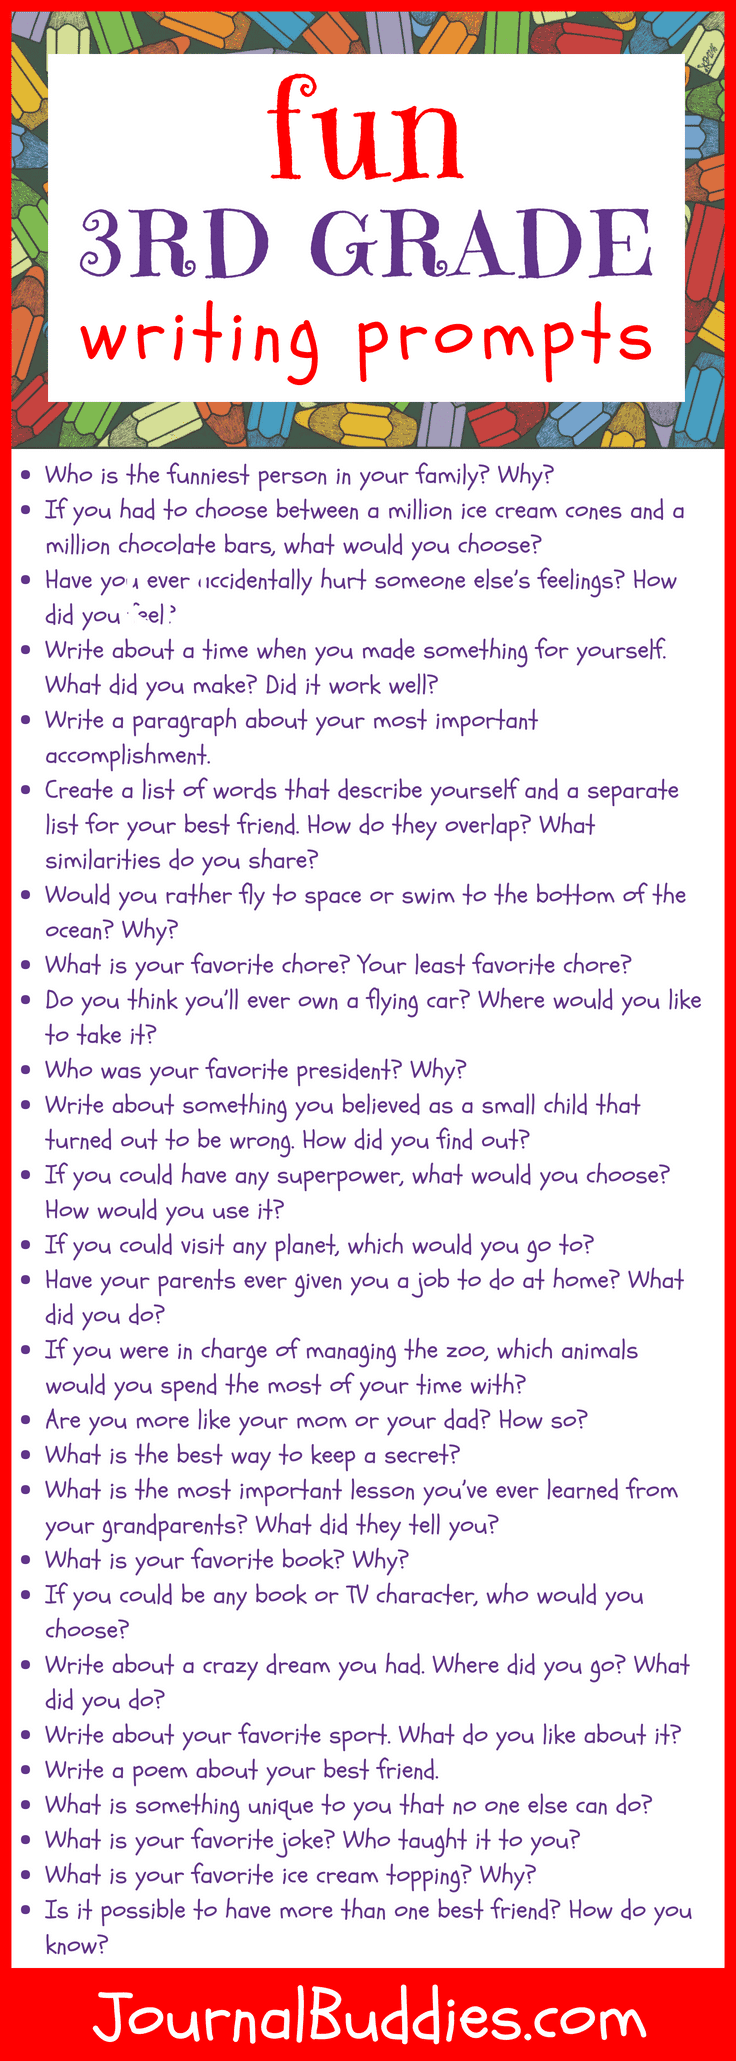 Use these third grade writing prompts to help maturing students unpack their thoughts each day.